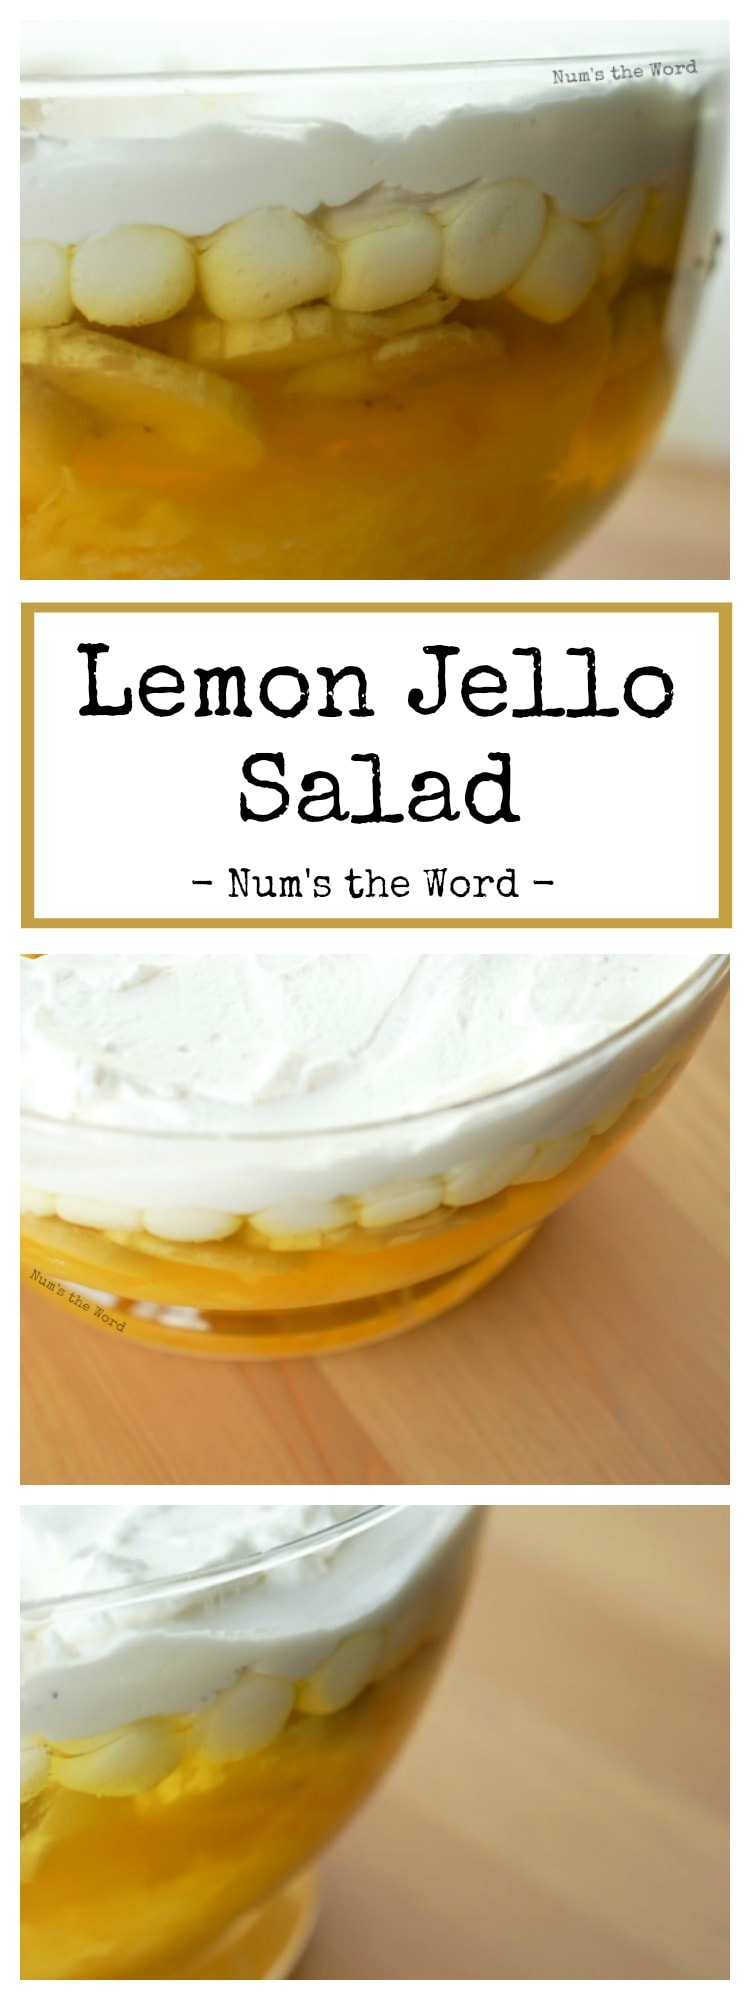 Lemon Jello Salad